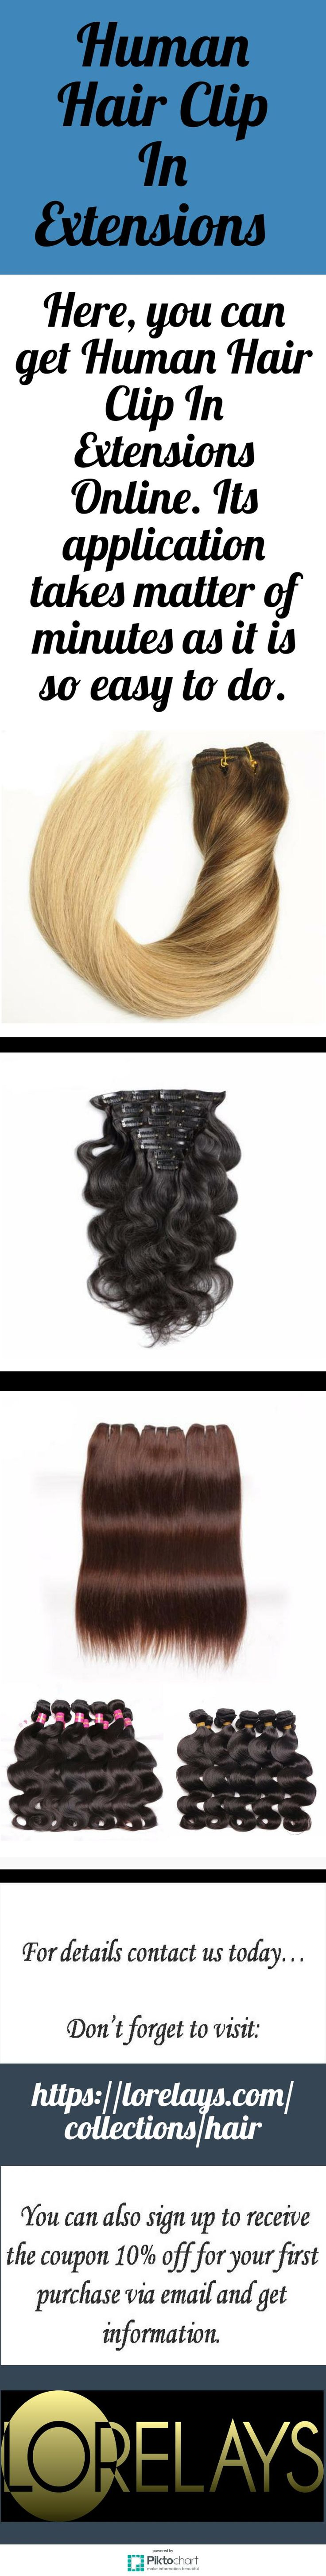 Here, you can get Human Hair Clip In Extensions Online. Its application takes matter of minutes as it is so easy to do. To Buy Human Hair Clip In Extensions online, visit: https://lorelays.com/collections/hair